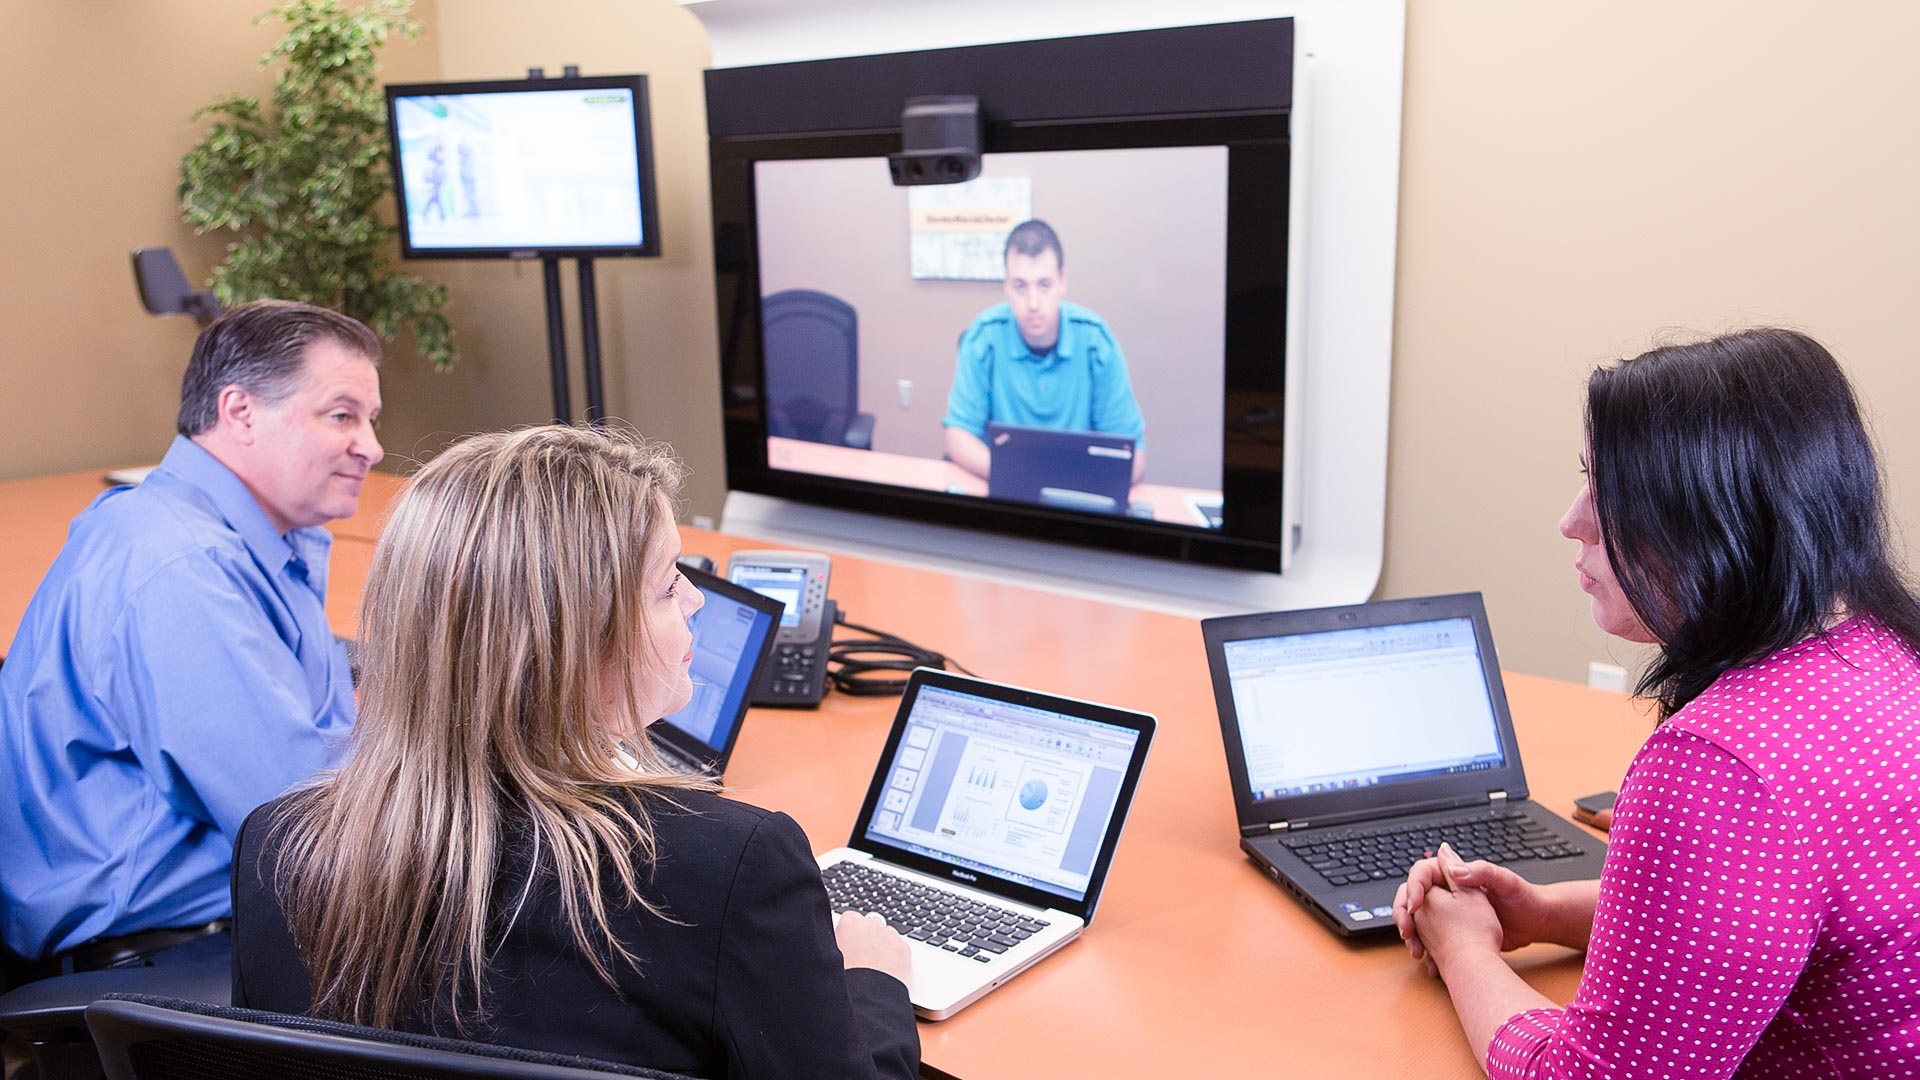 Meeting in telepresence conference room